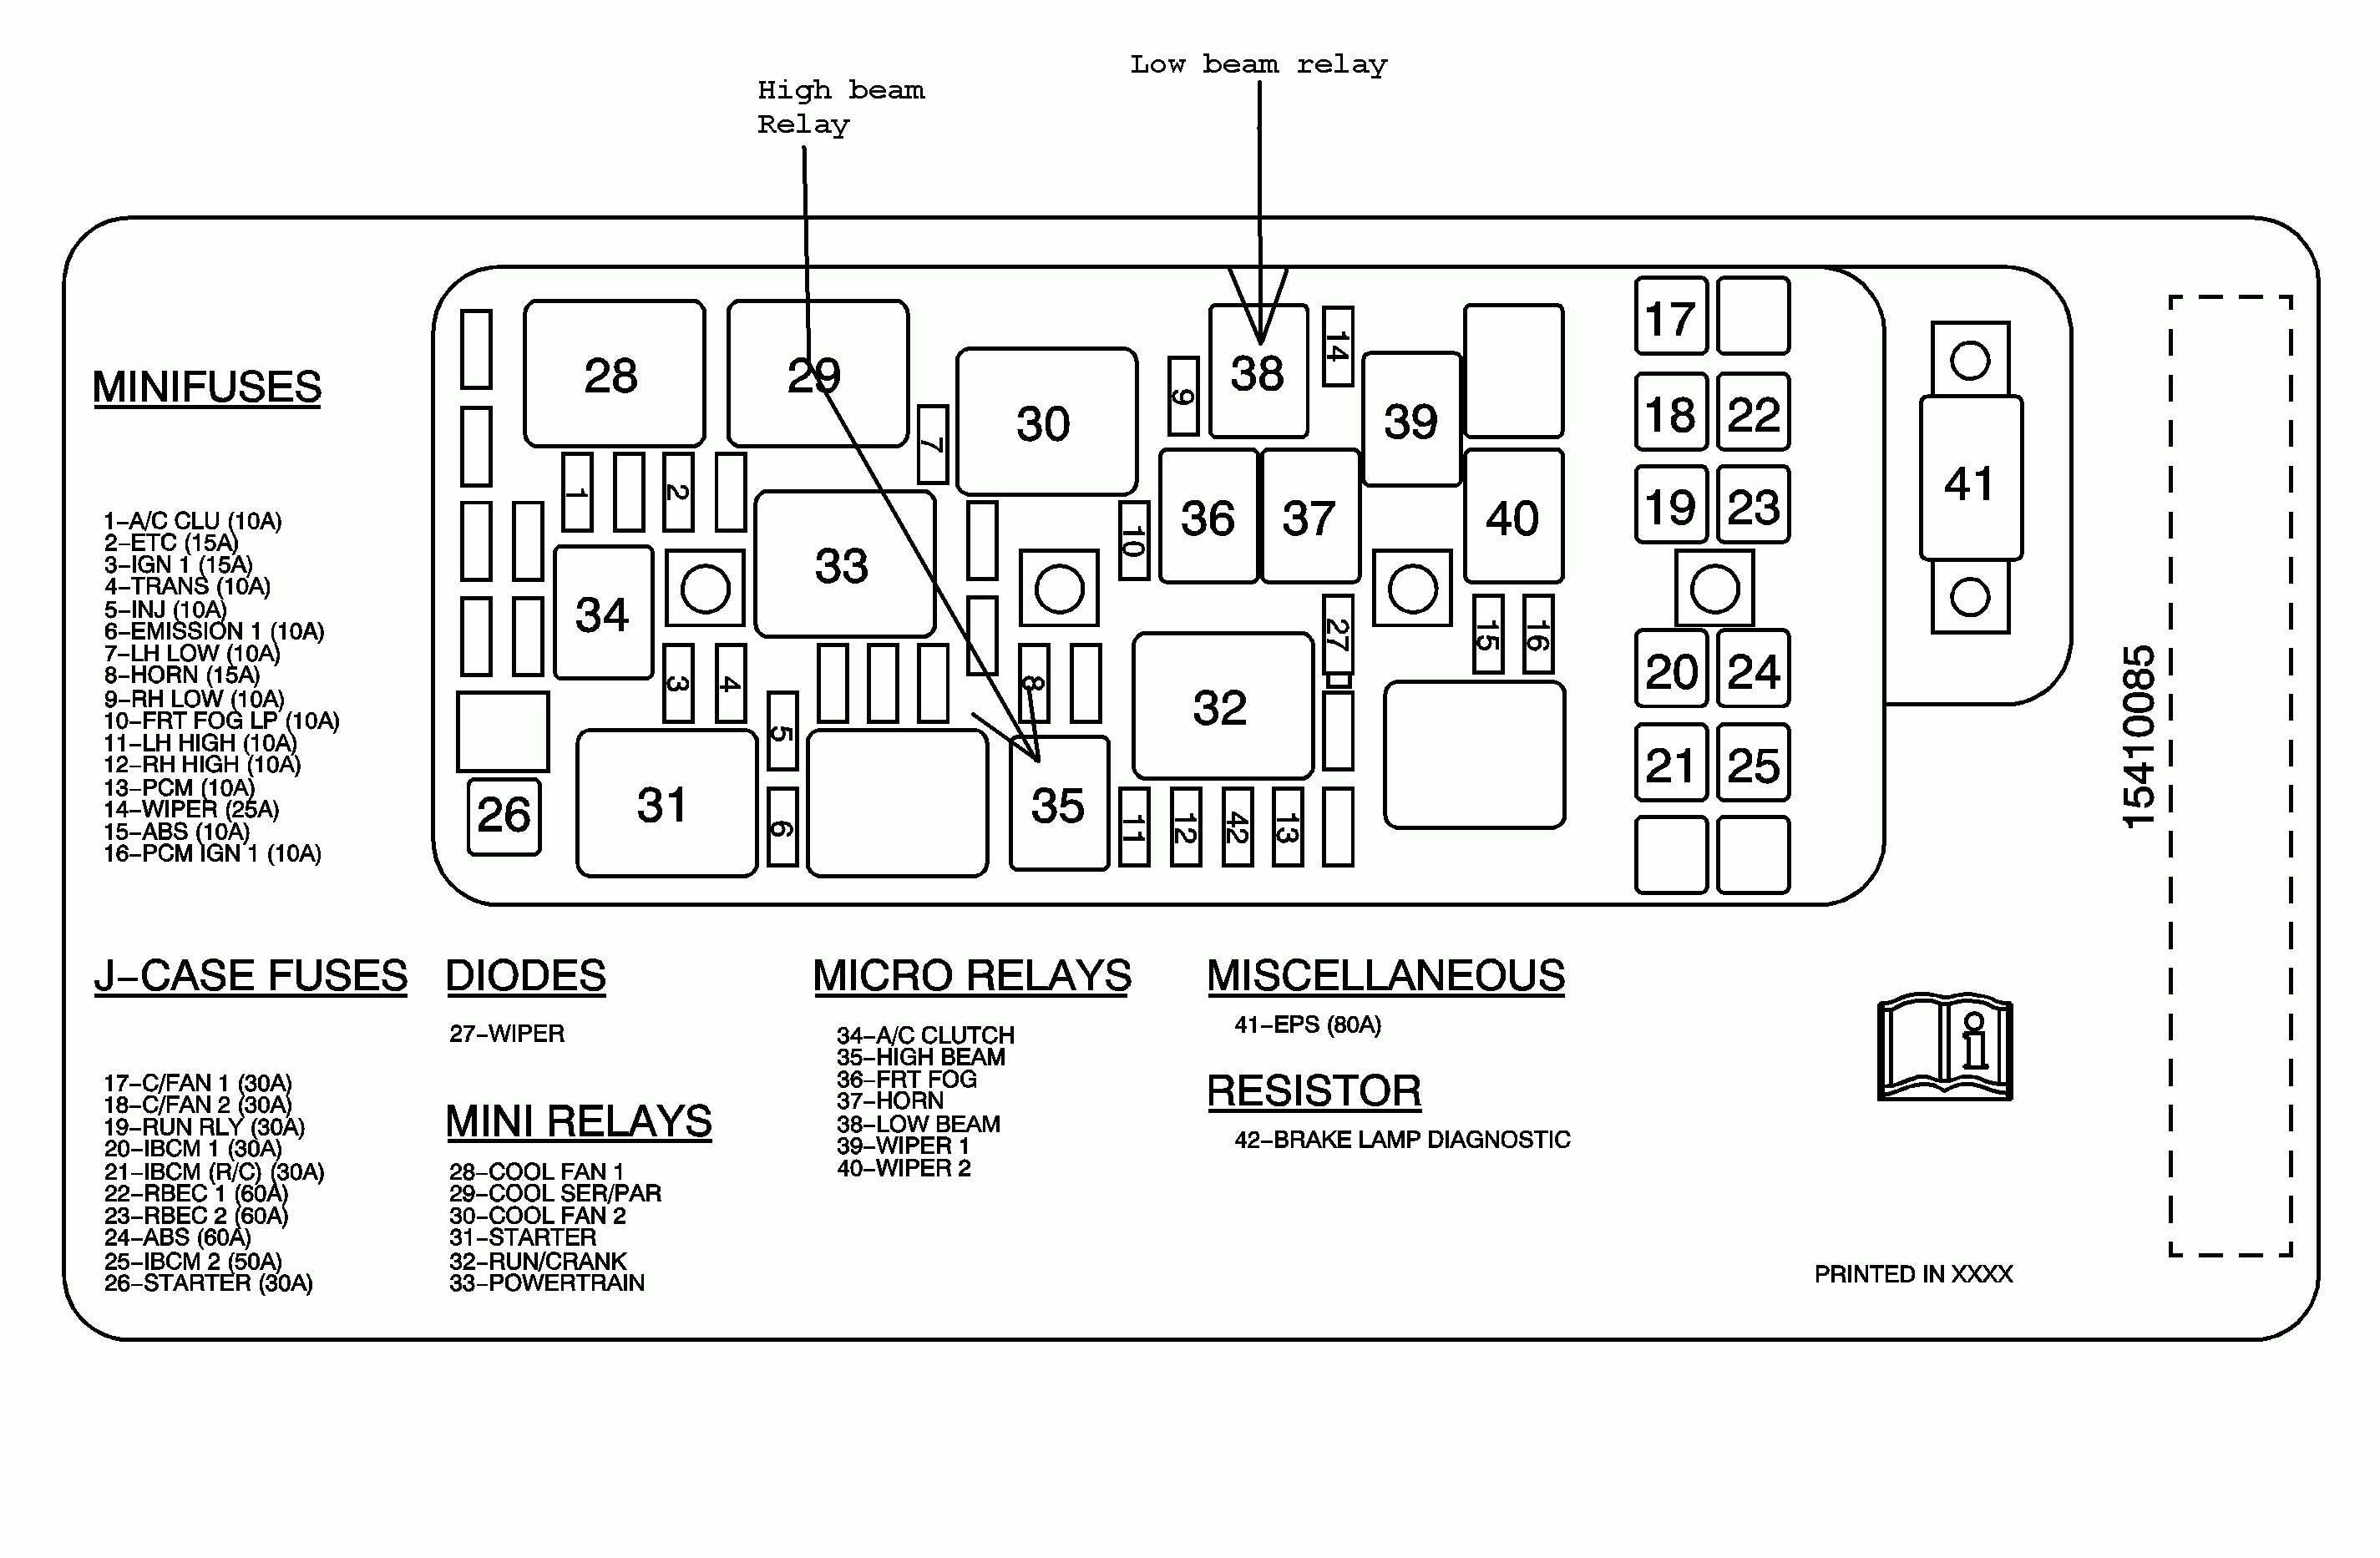 [DIAGRAM] I Need A Stereo Wiring Diagram For A 2003 Chevy